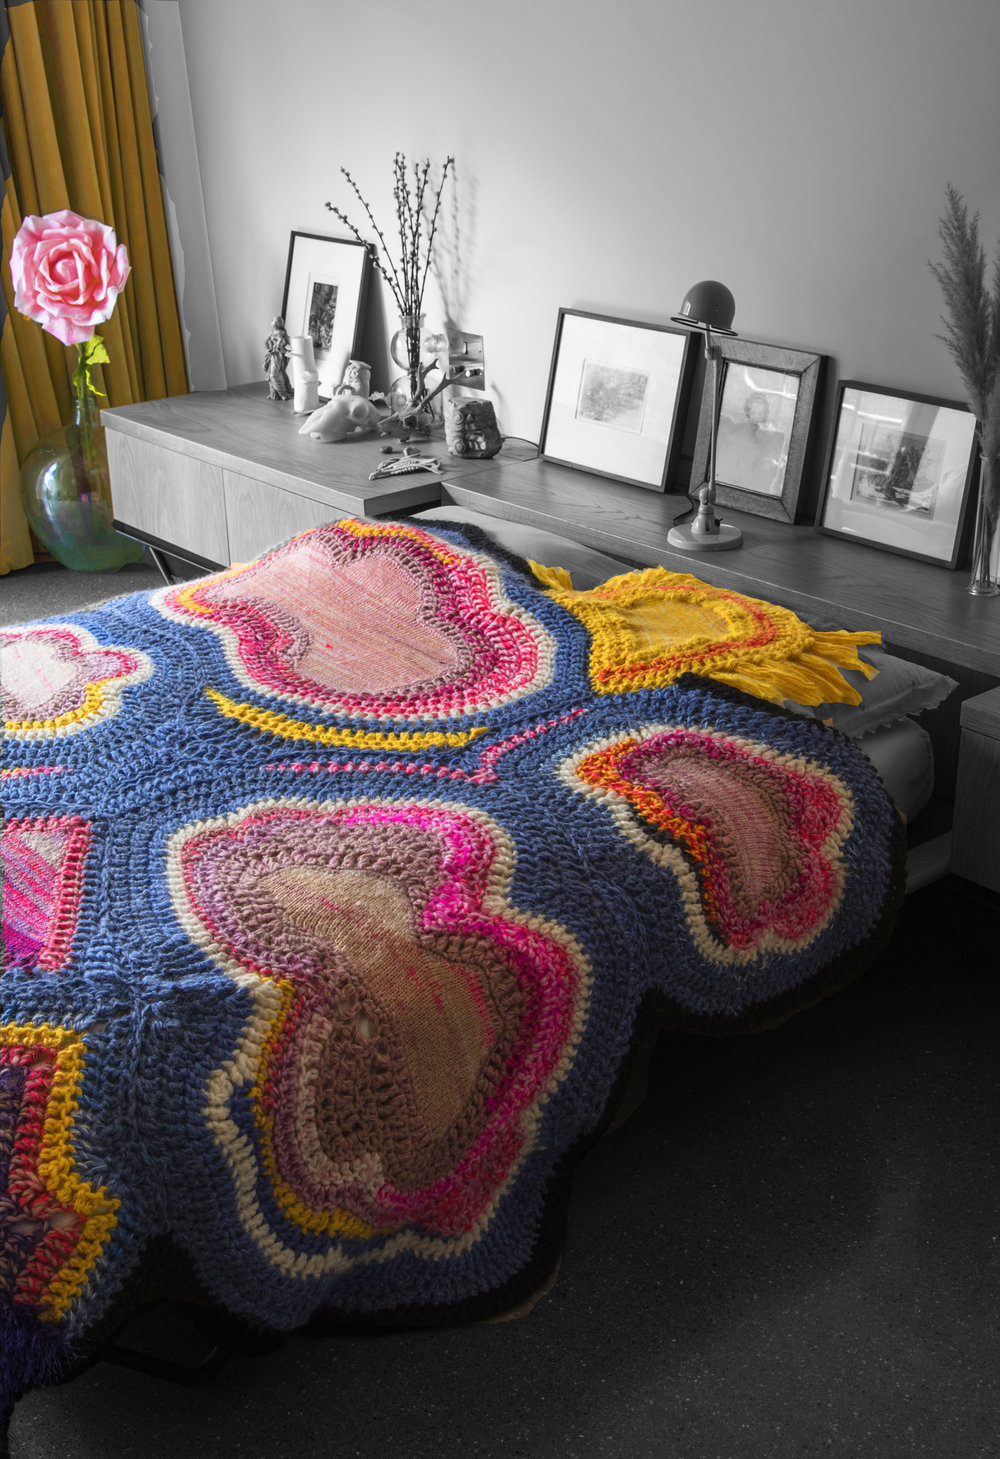 Sunrise 270 x 220 cm  Crochet and knit  2016